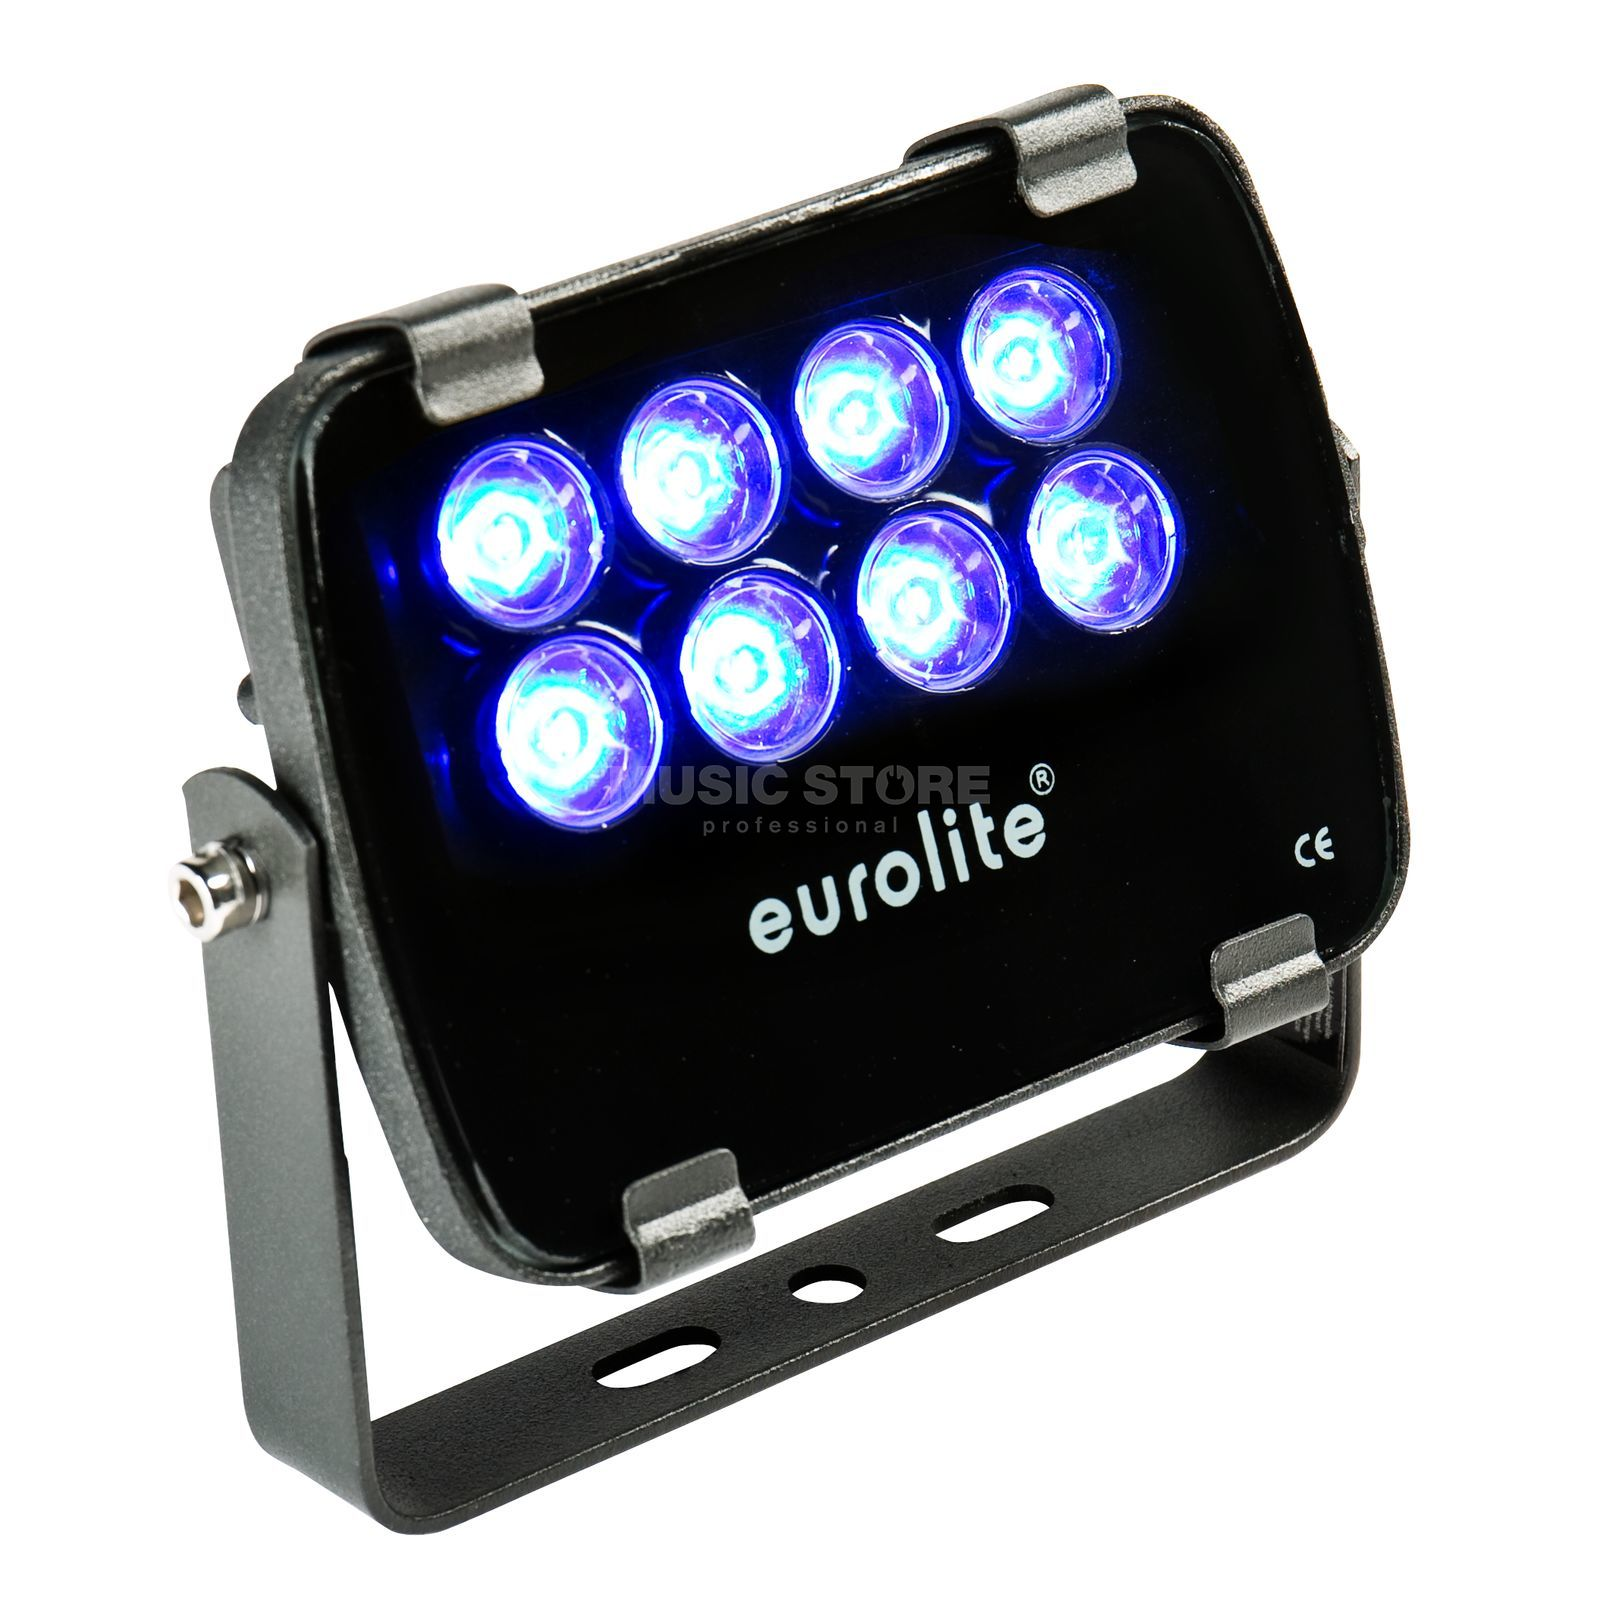 Eurolite LED IP FL-8 blau 30° IP 56, 8x1W Garden Light Produktbild